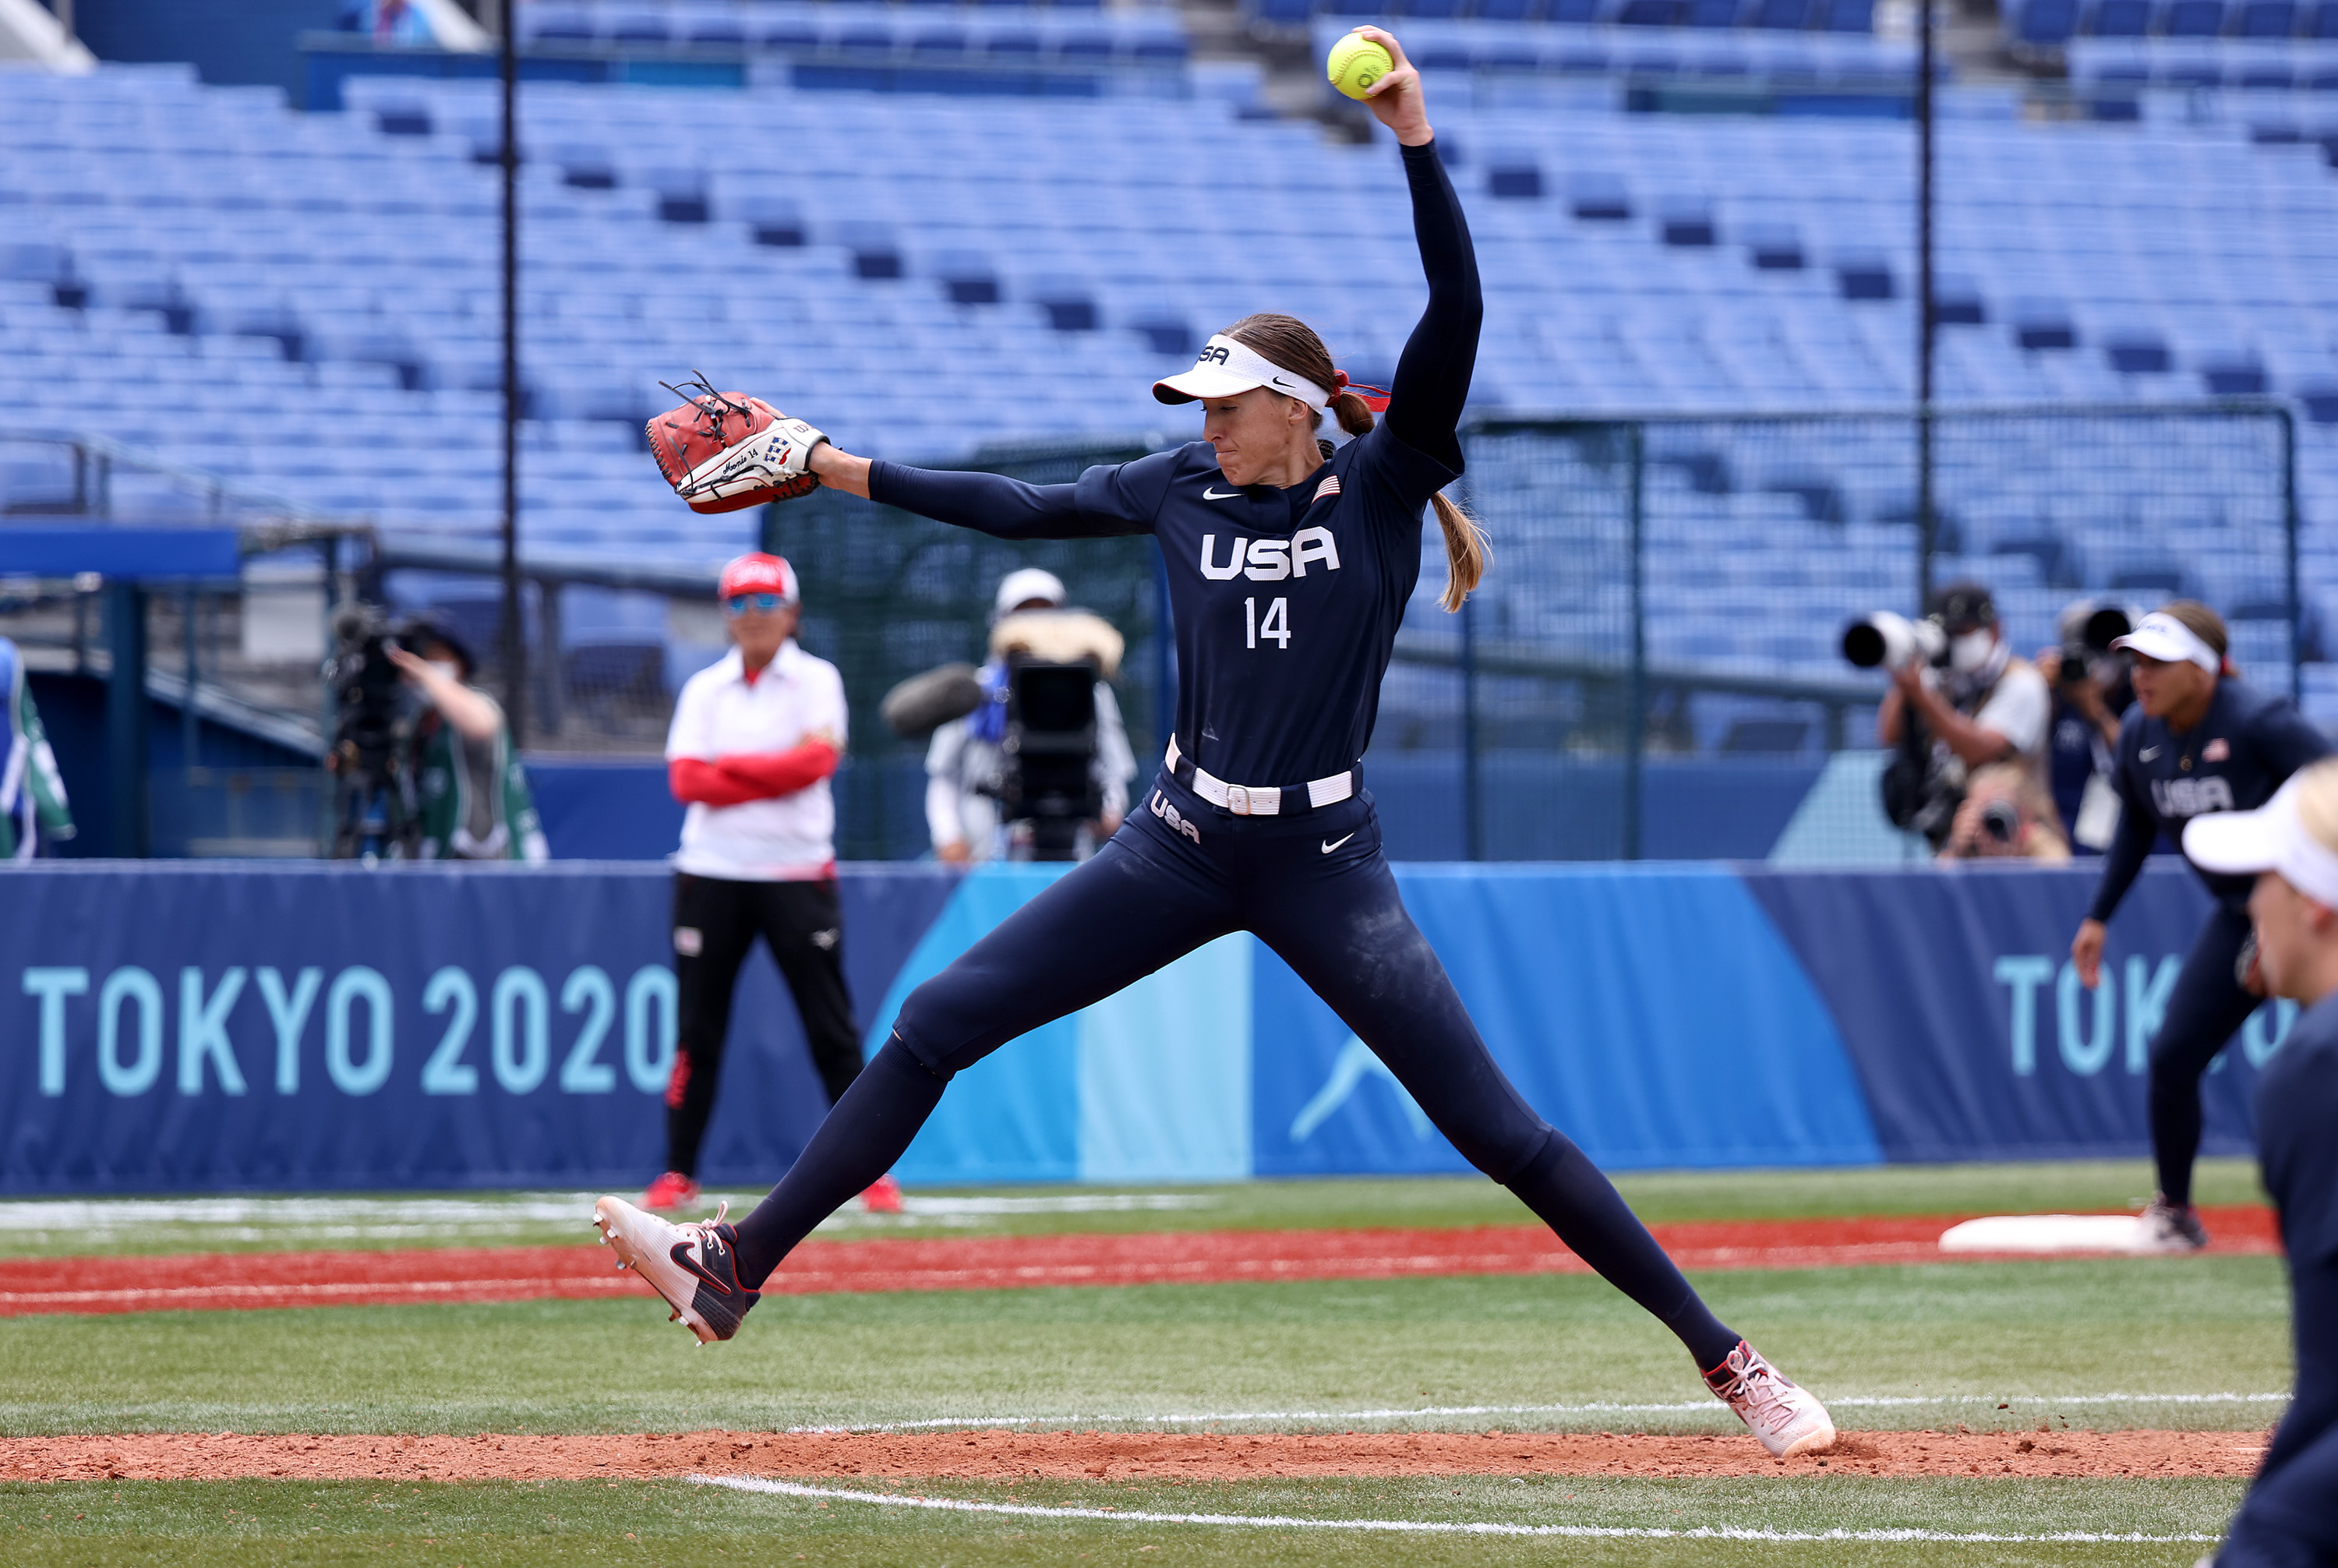 Monica Abbott Challenges IOC to Permanently Play Olympic Softball